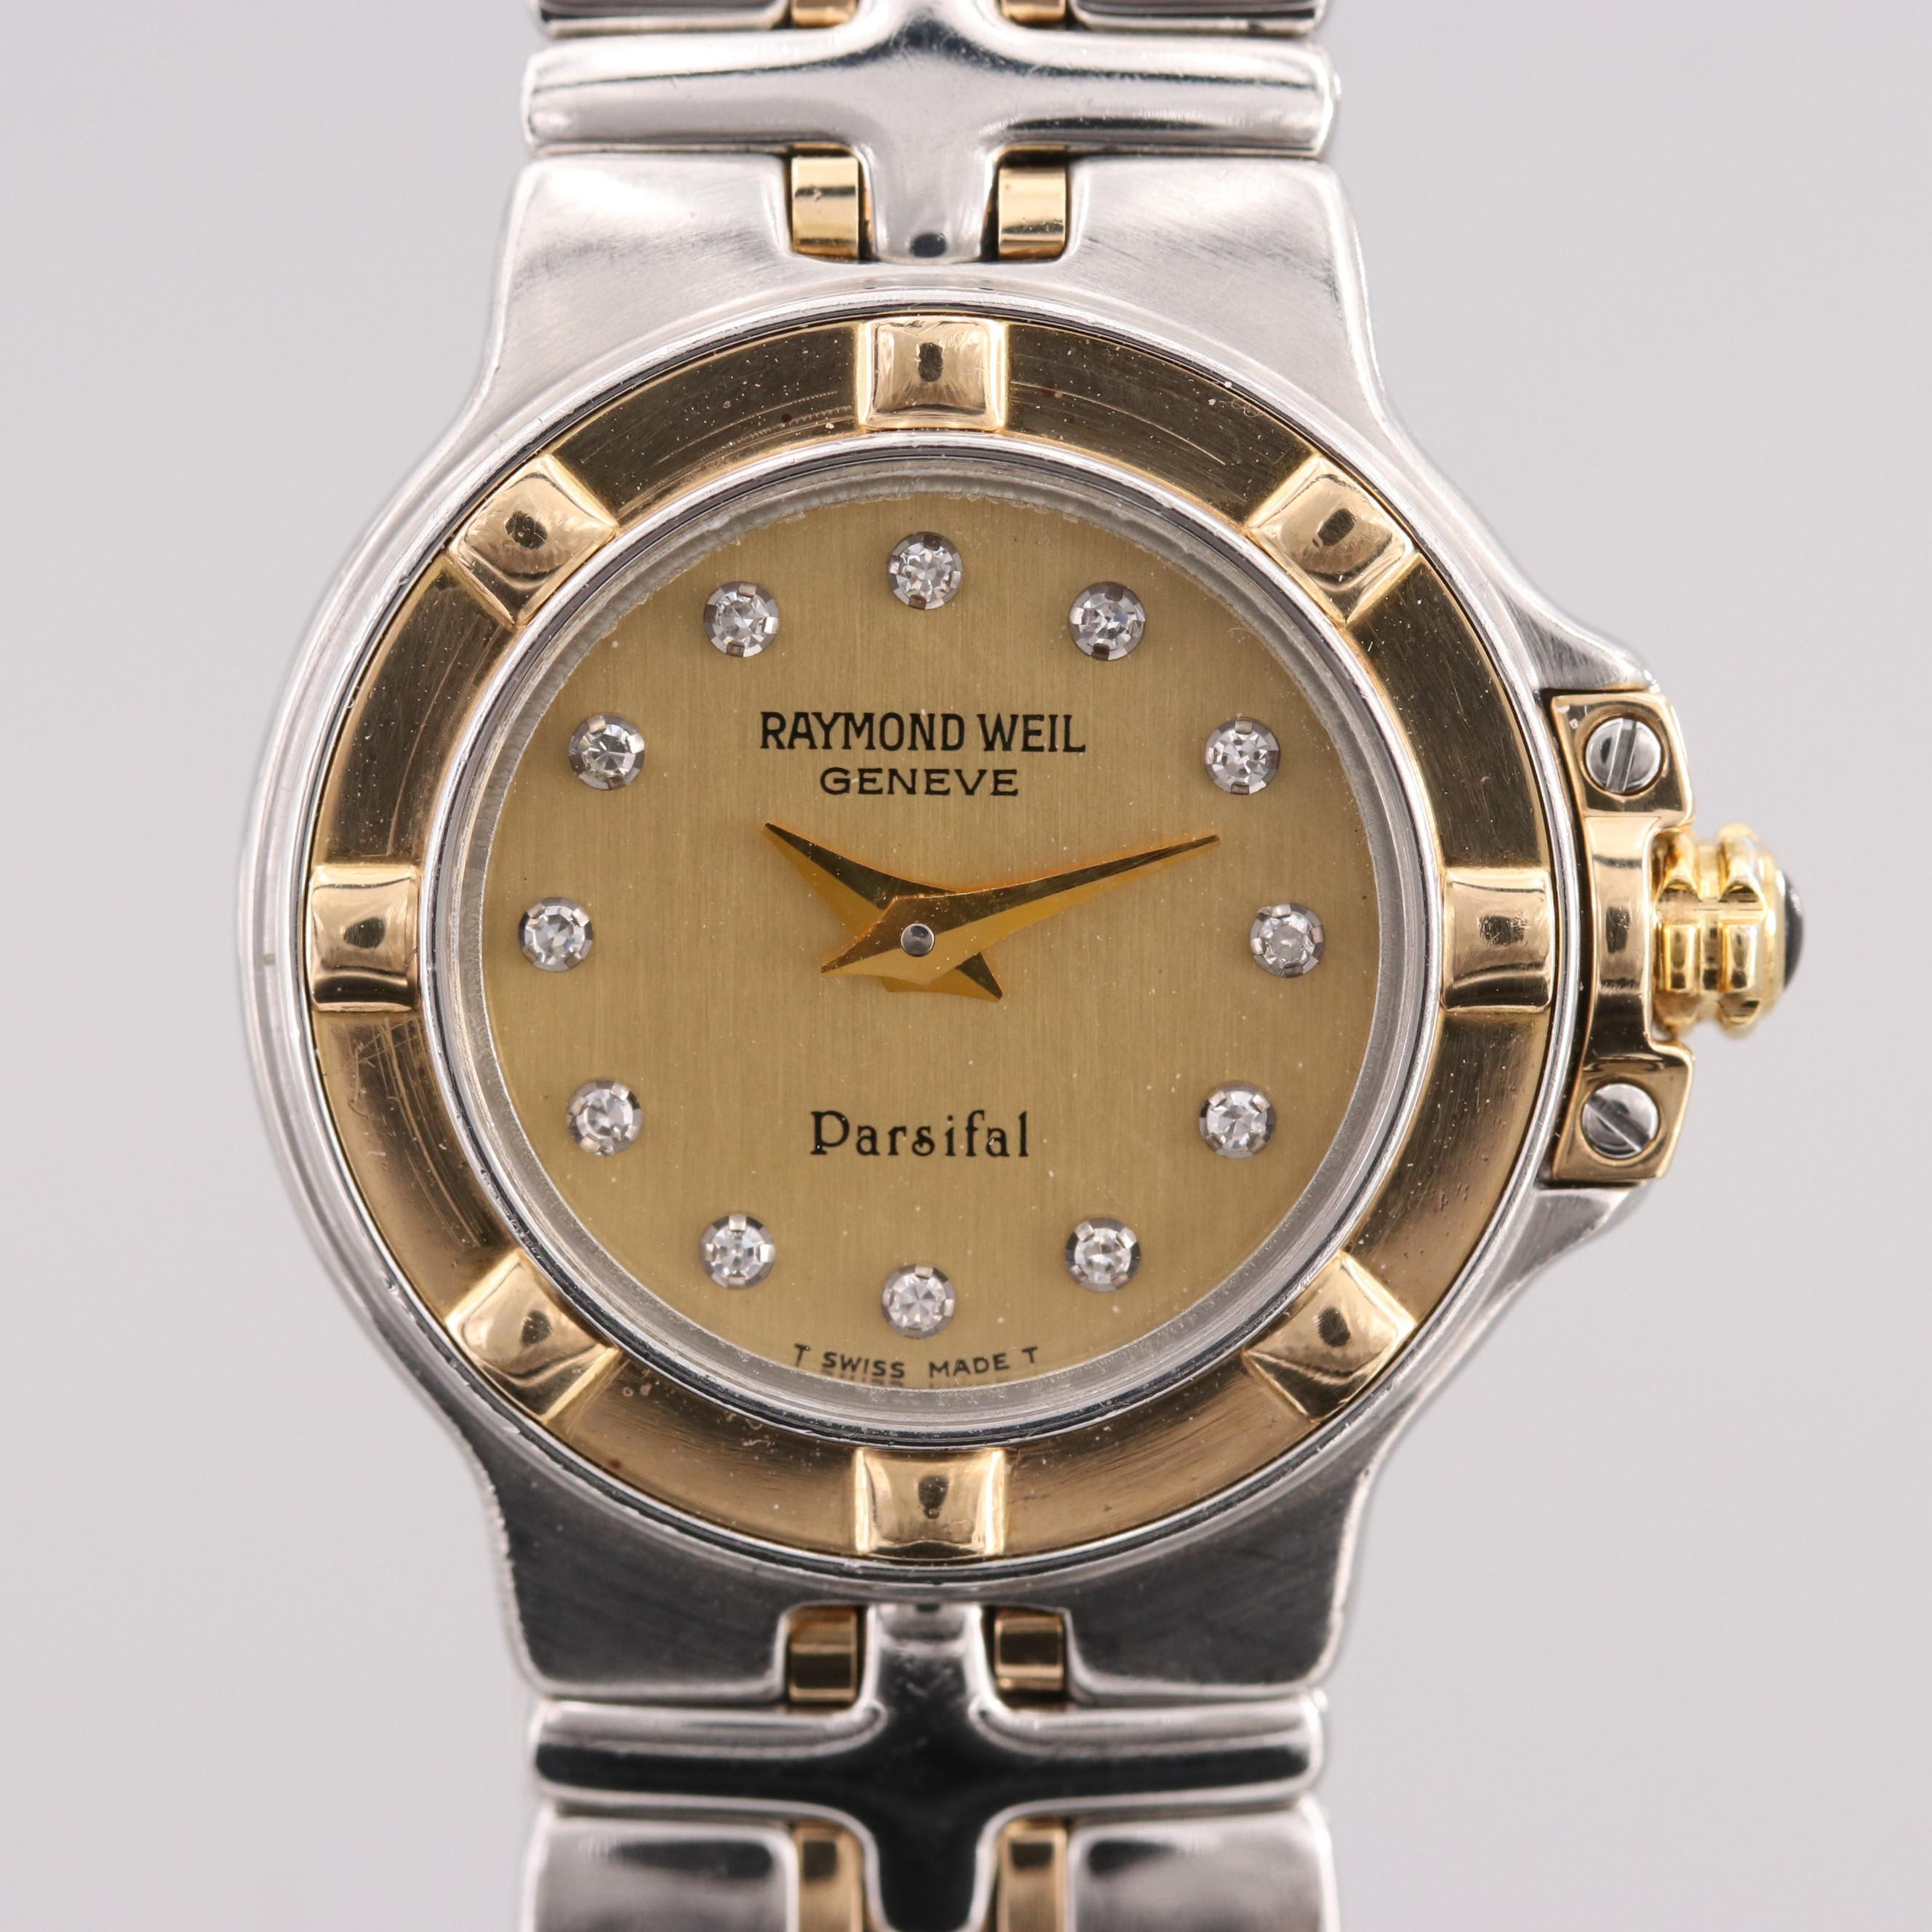 Raymond Weil Parsifal Stainless Steel and 18K Gold Wristwatch With Diamond Dial